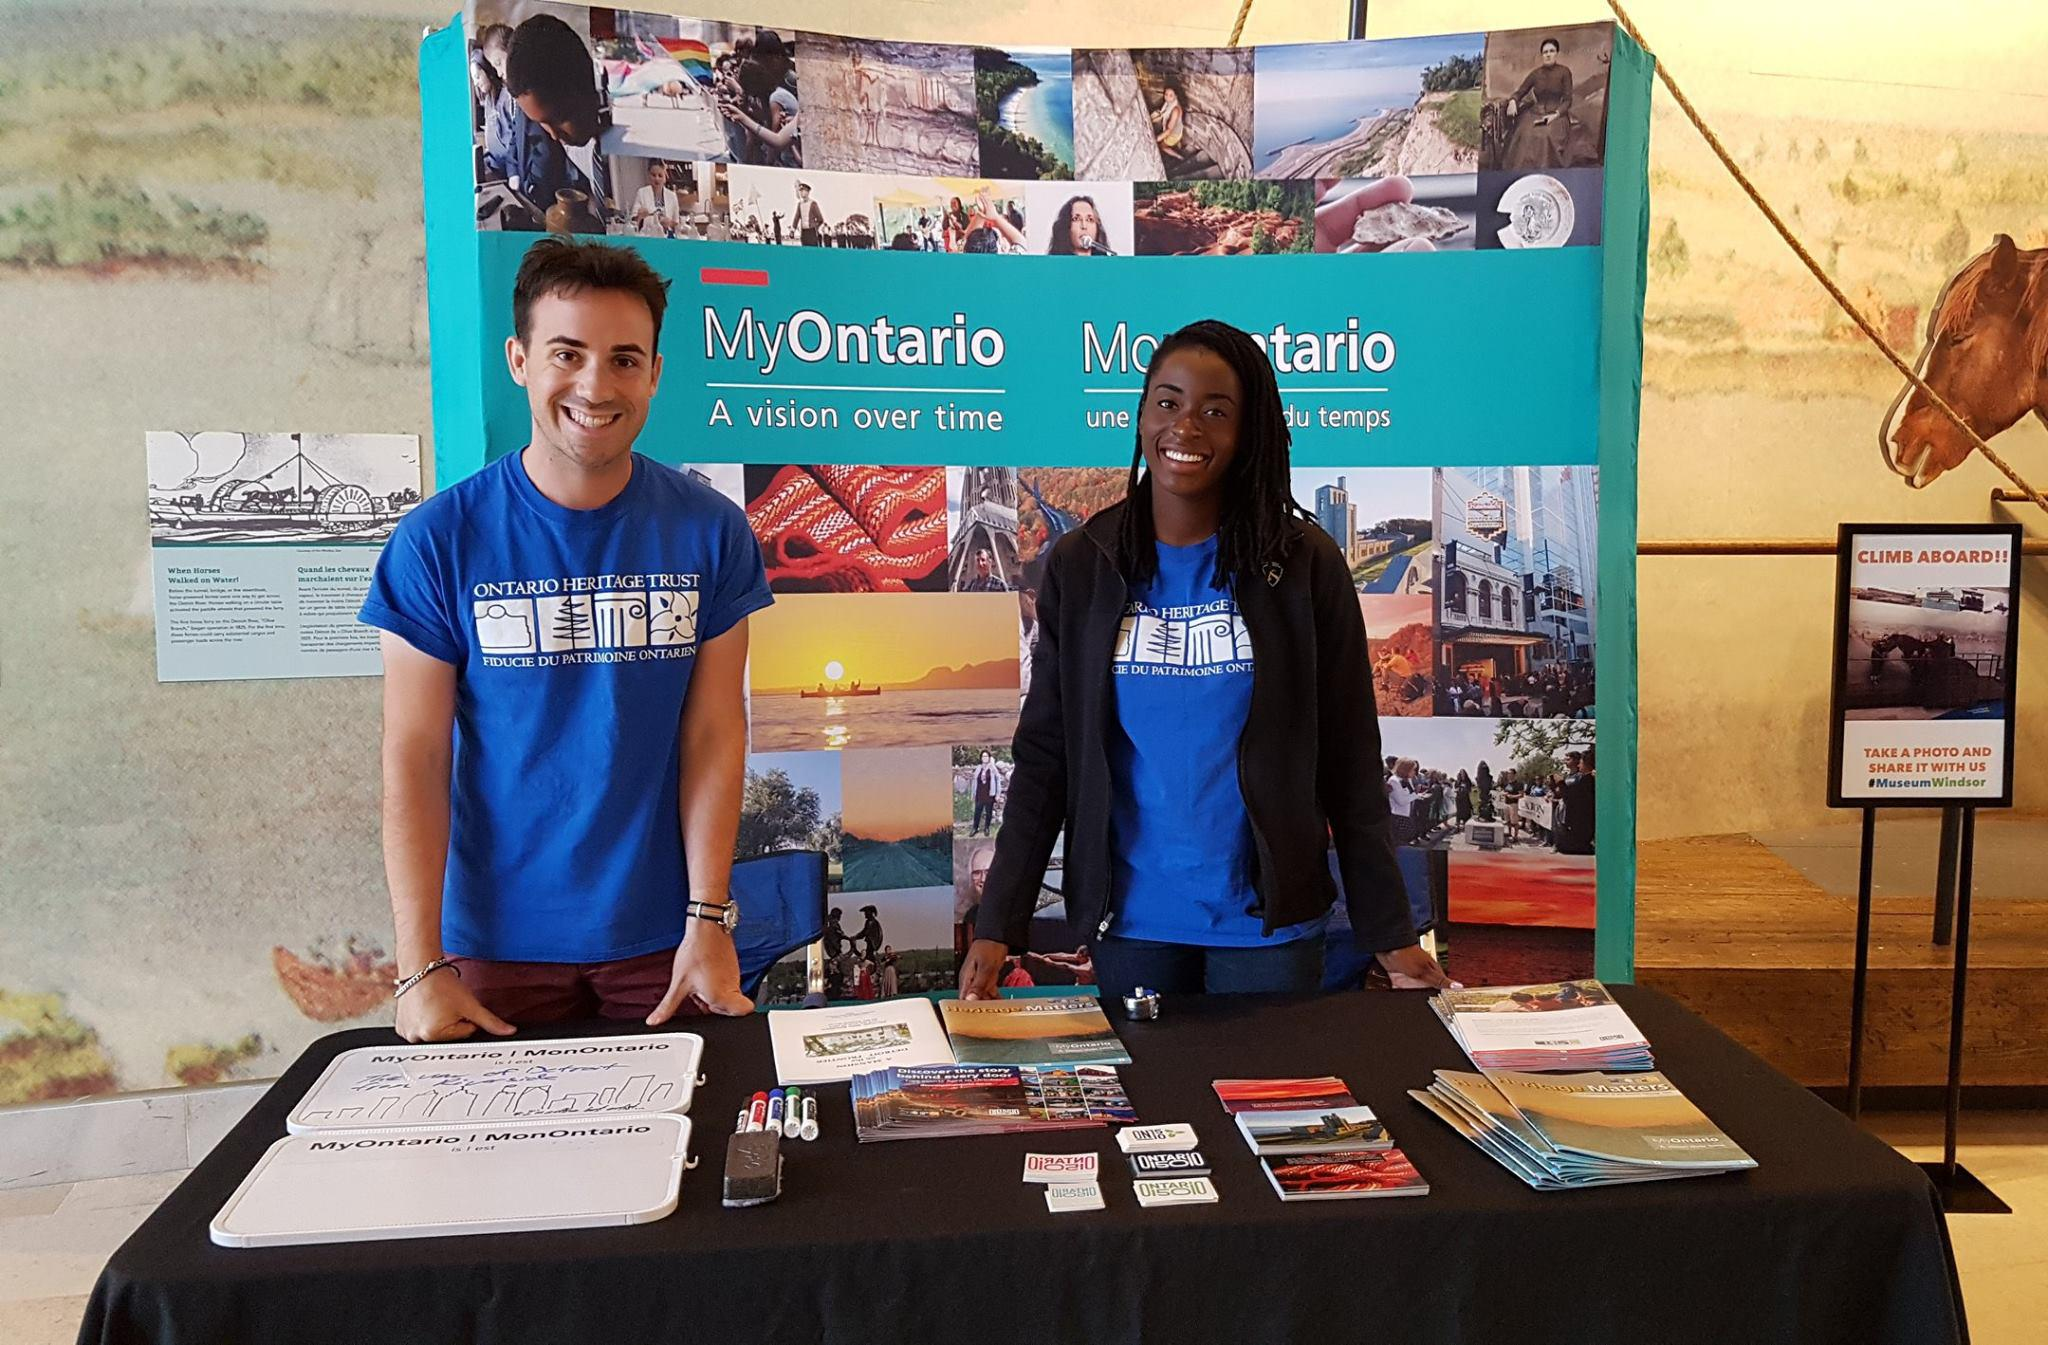 David and Olivia at their MyOntario booth at Chimczuk Museum in Windsor